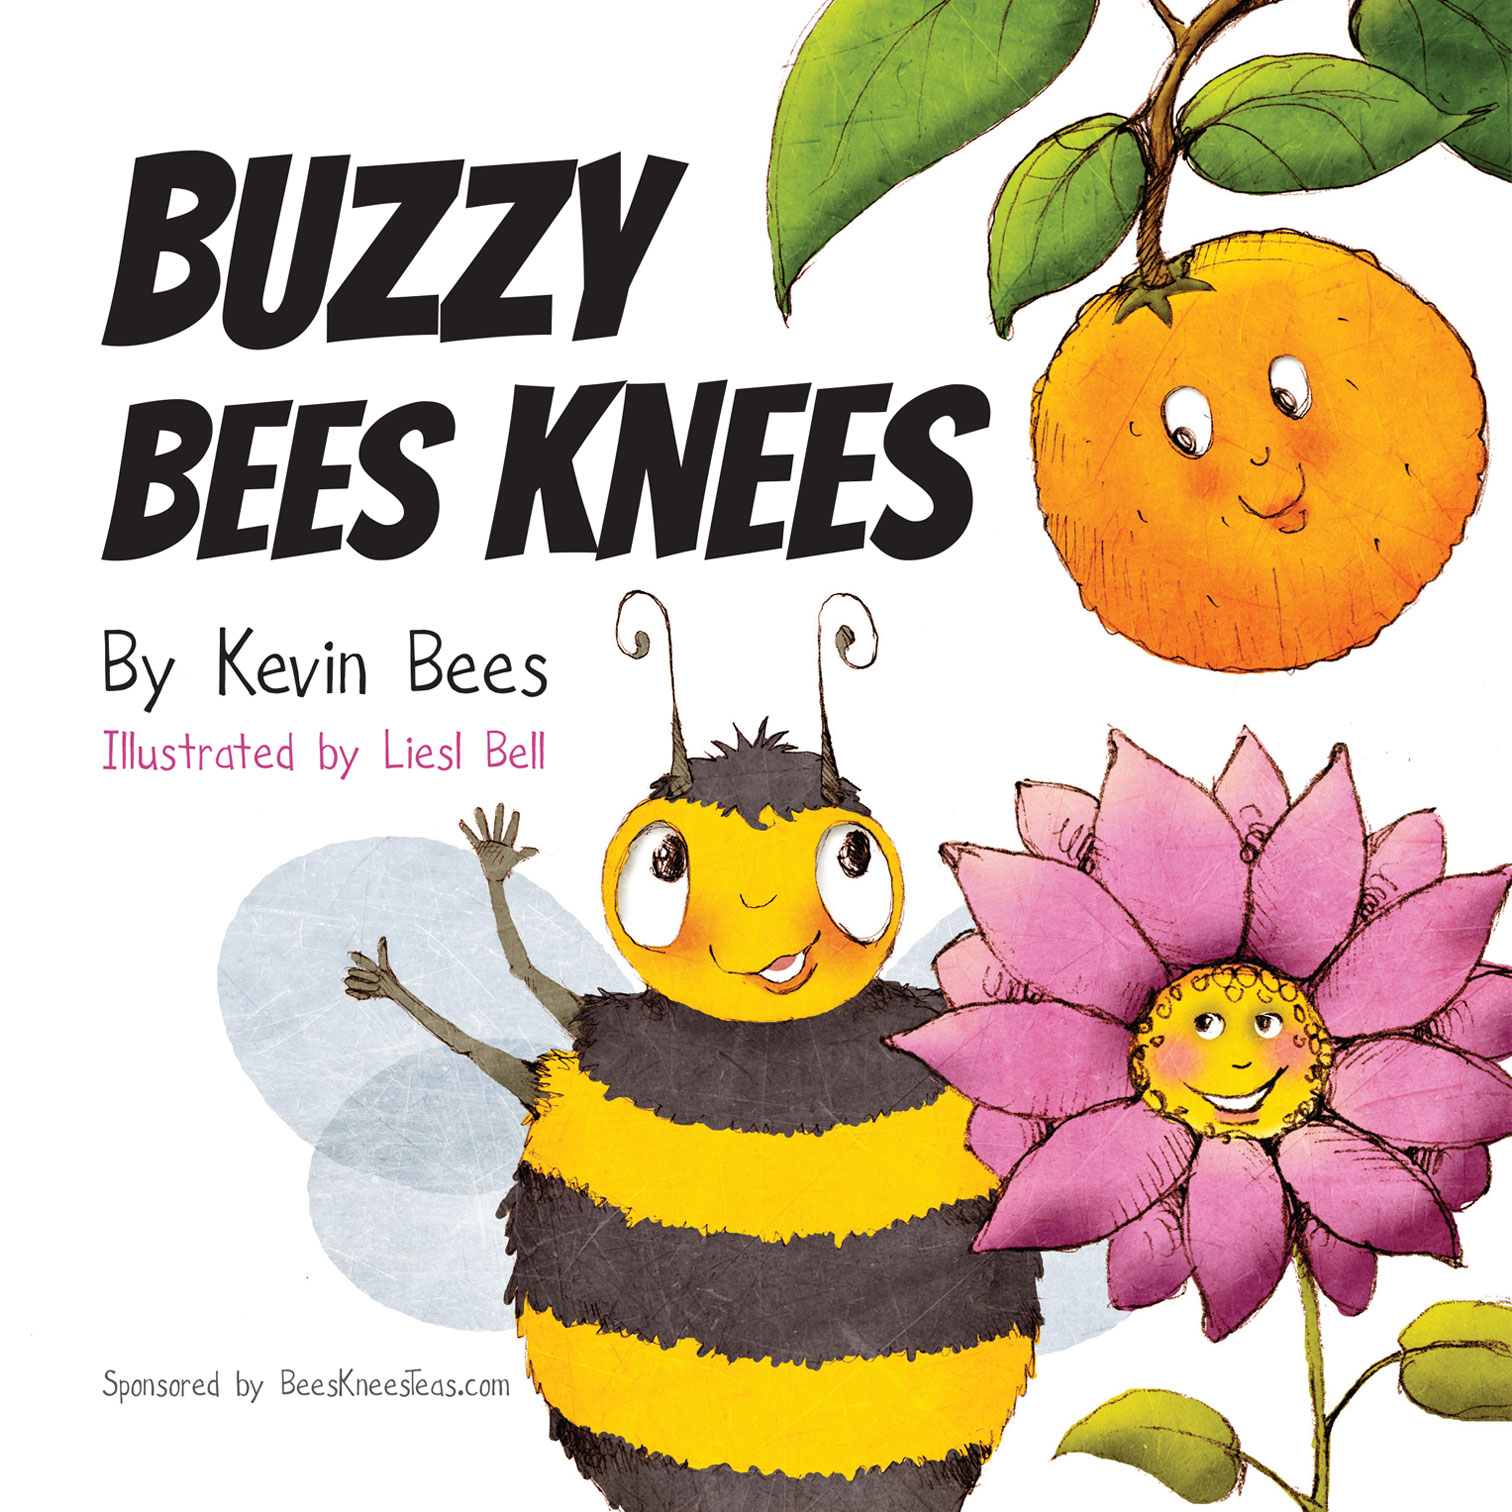 BuzzyBees_Cover